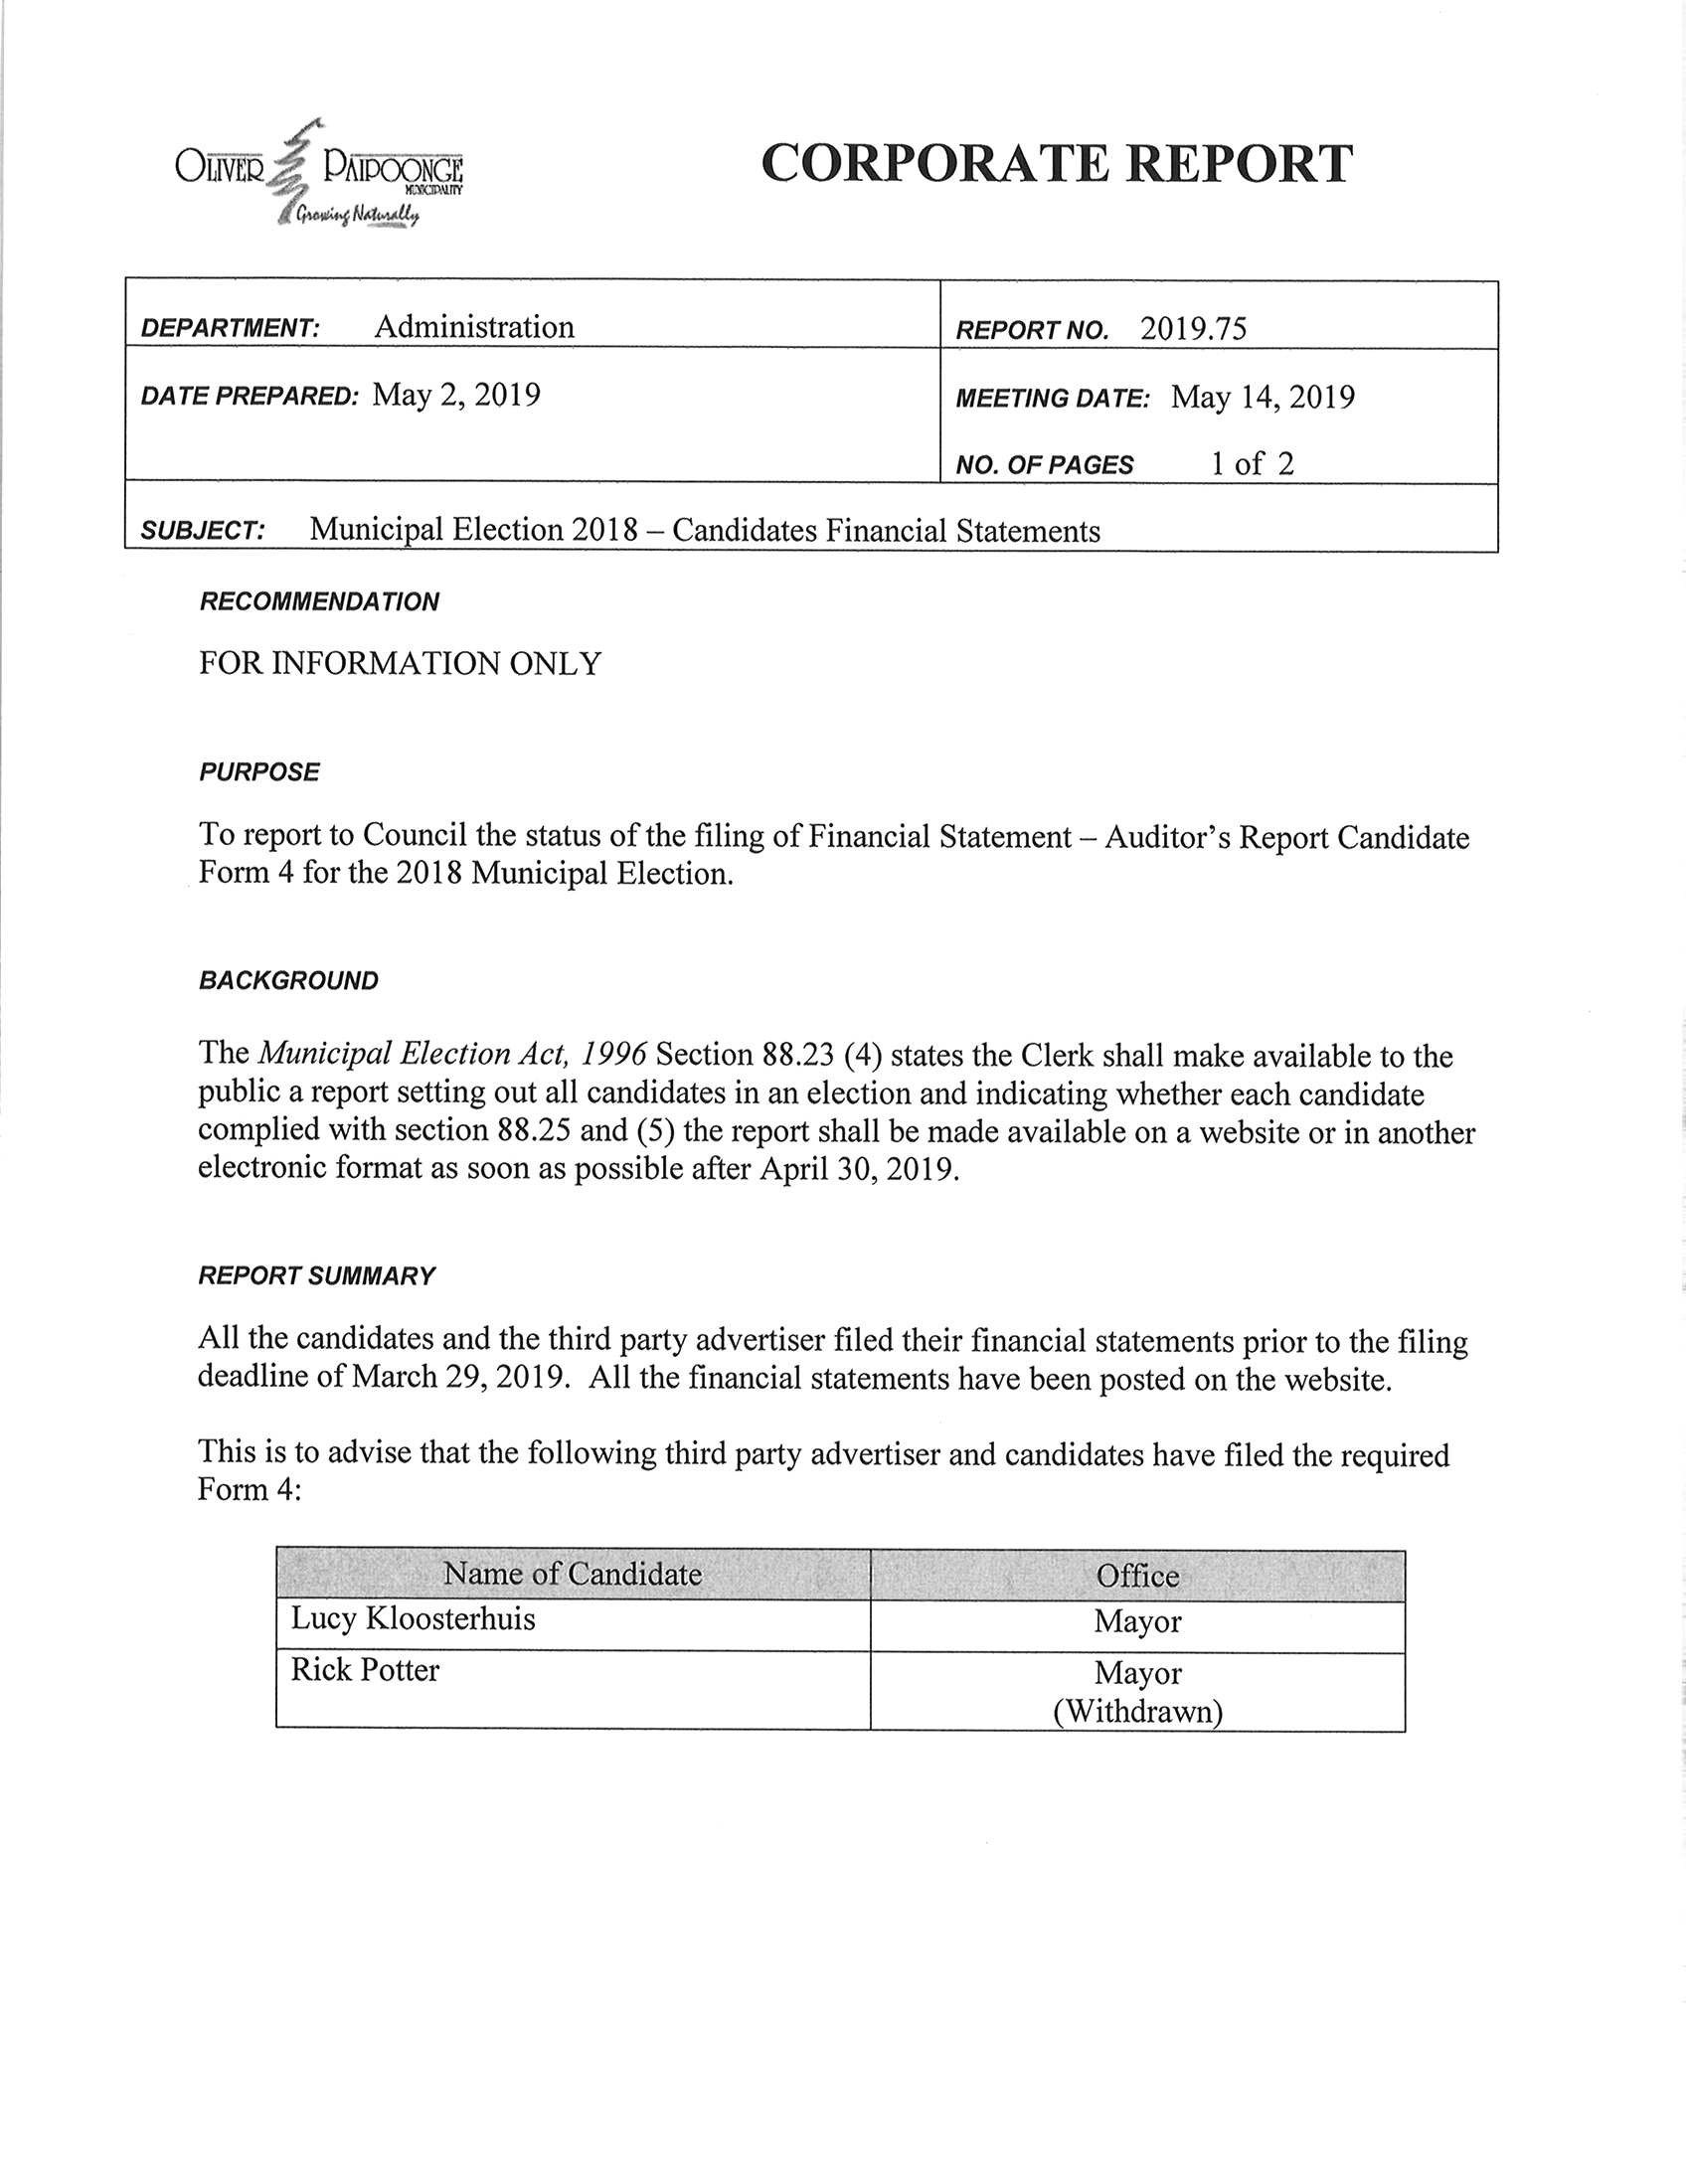 Report 2019.75 - Municipal Election 2018 - Candidates Financial Statements_Page_1.jpg